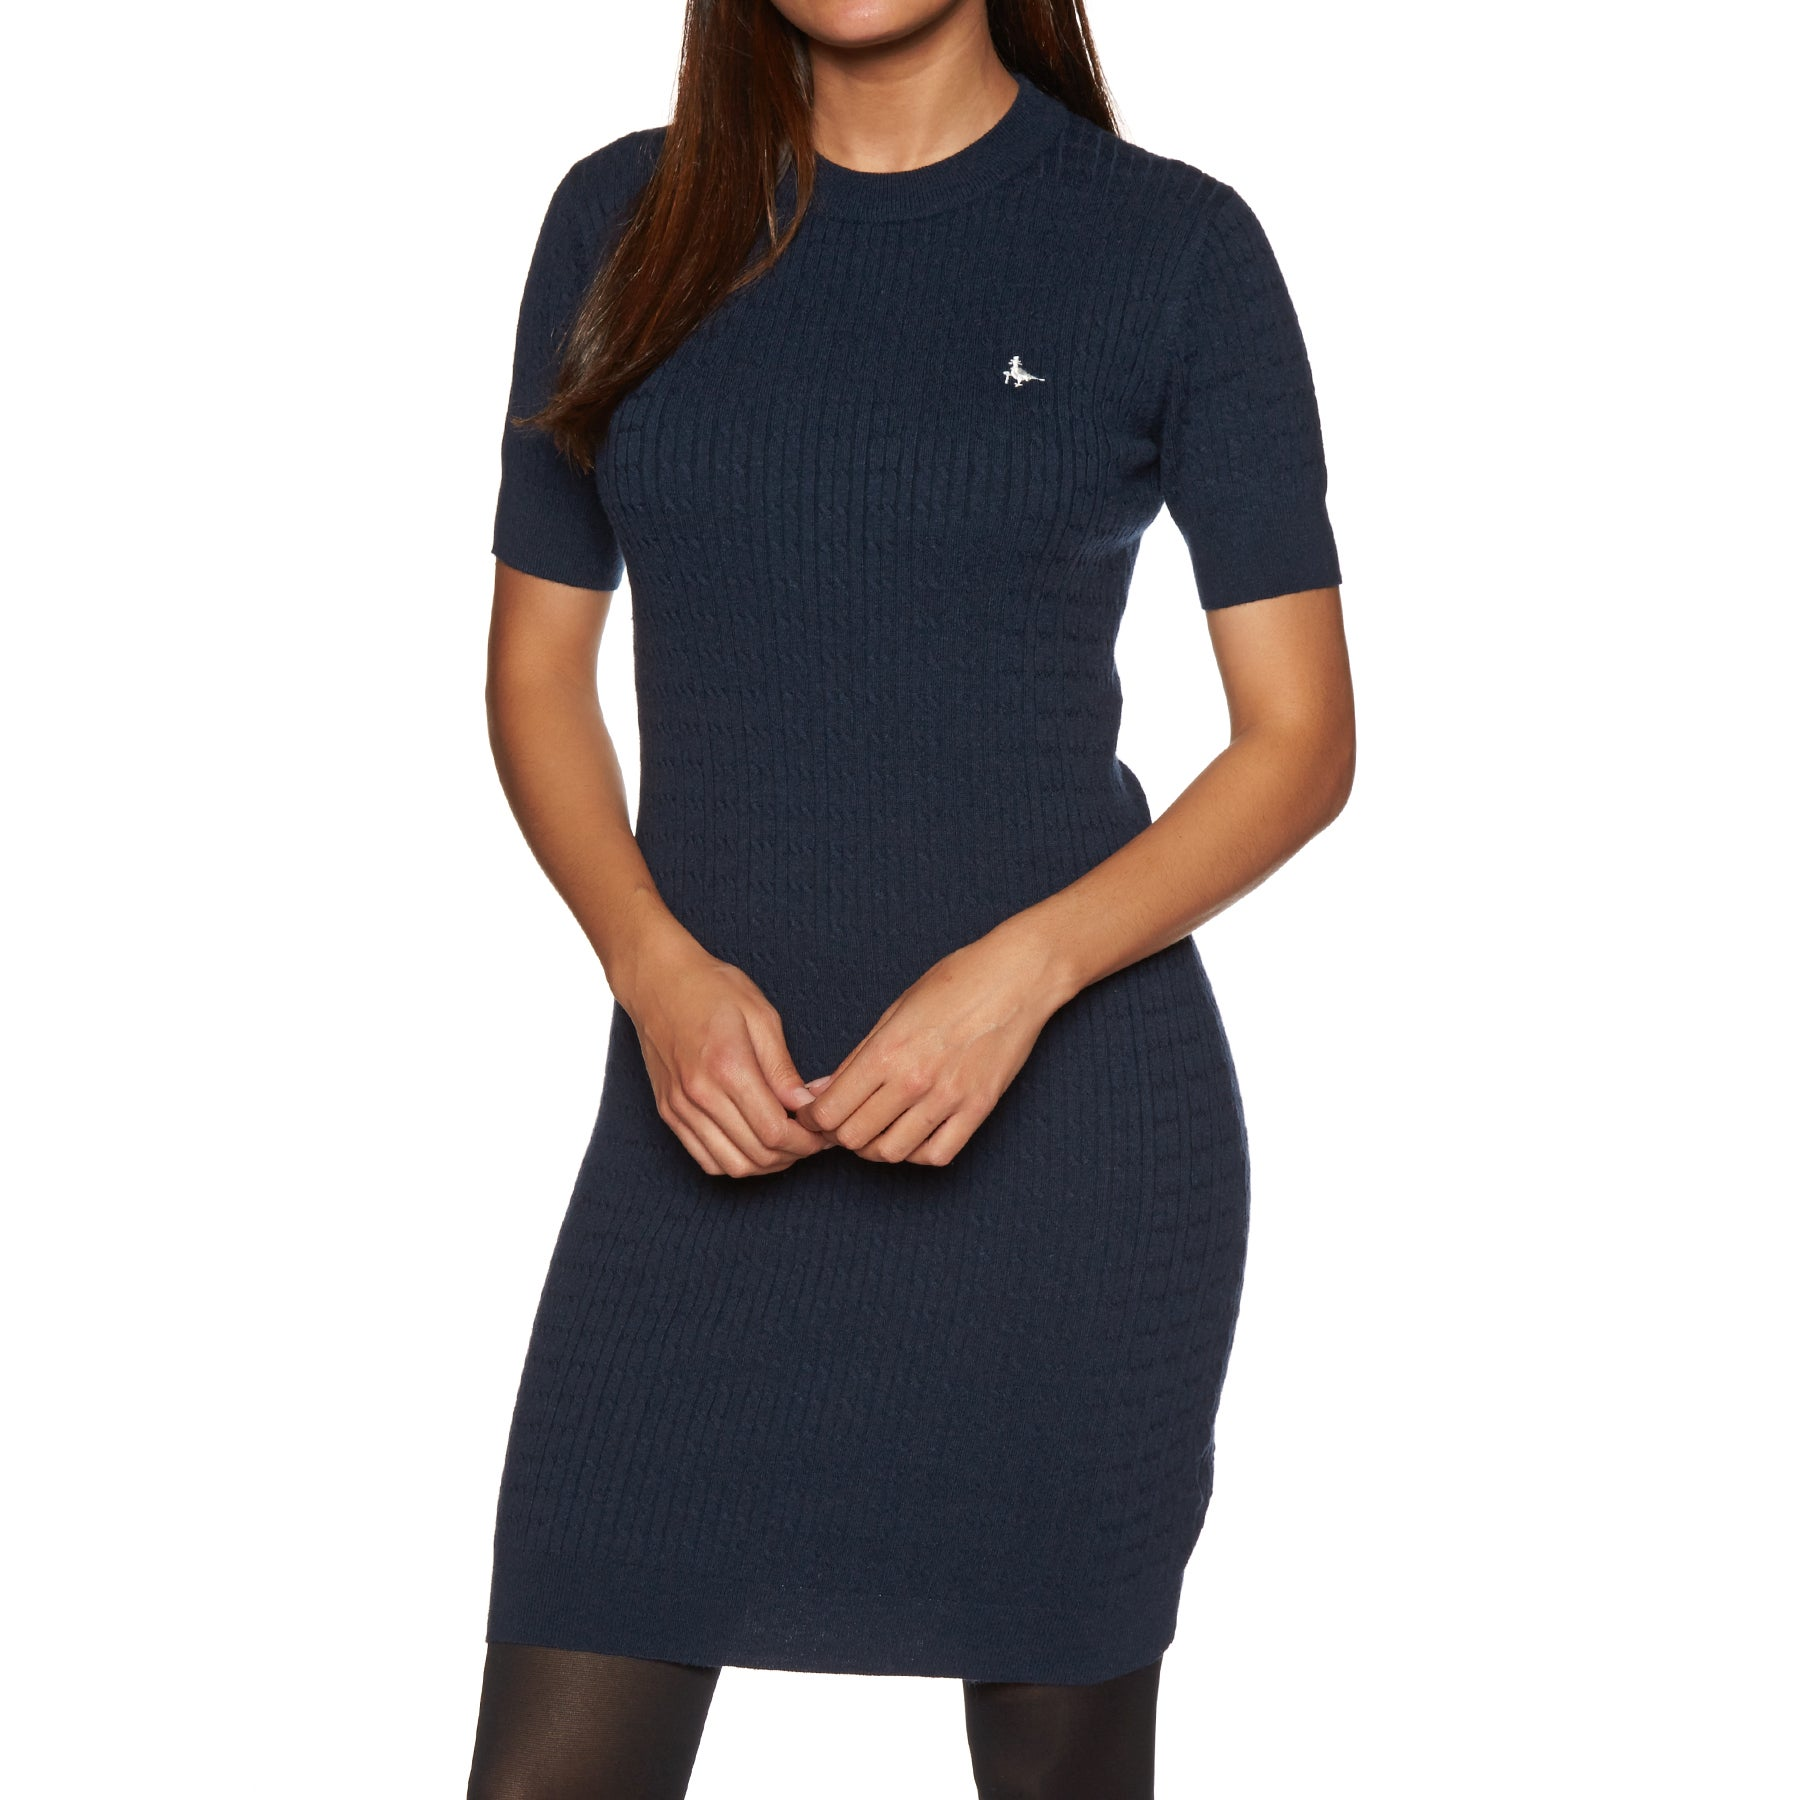 Jack Wills Danesfort Cable Knit Womens Dress - Navy